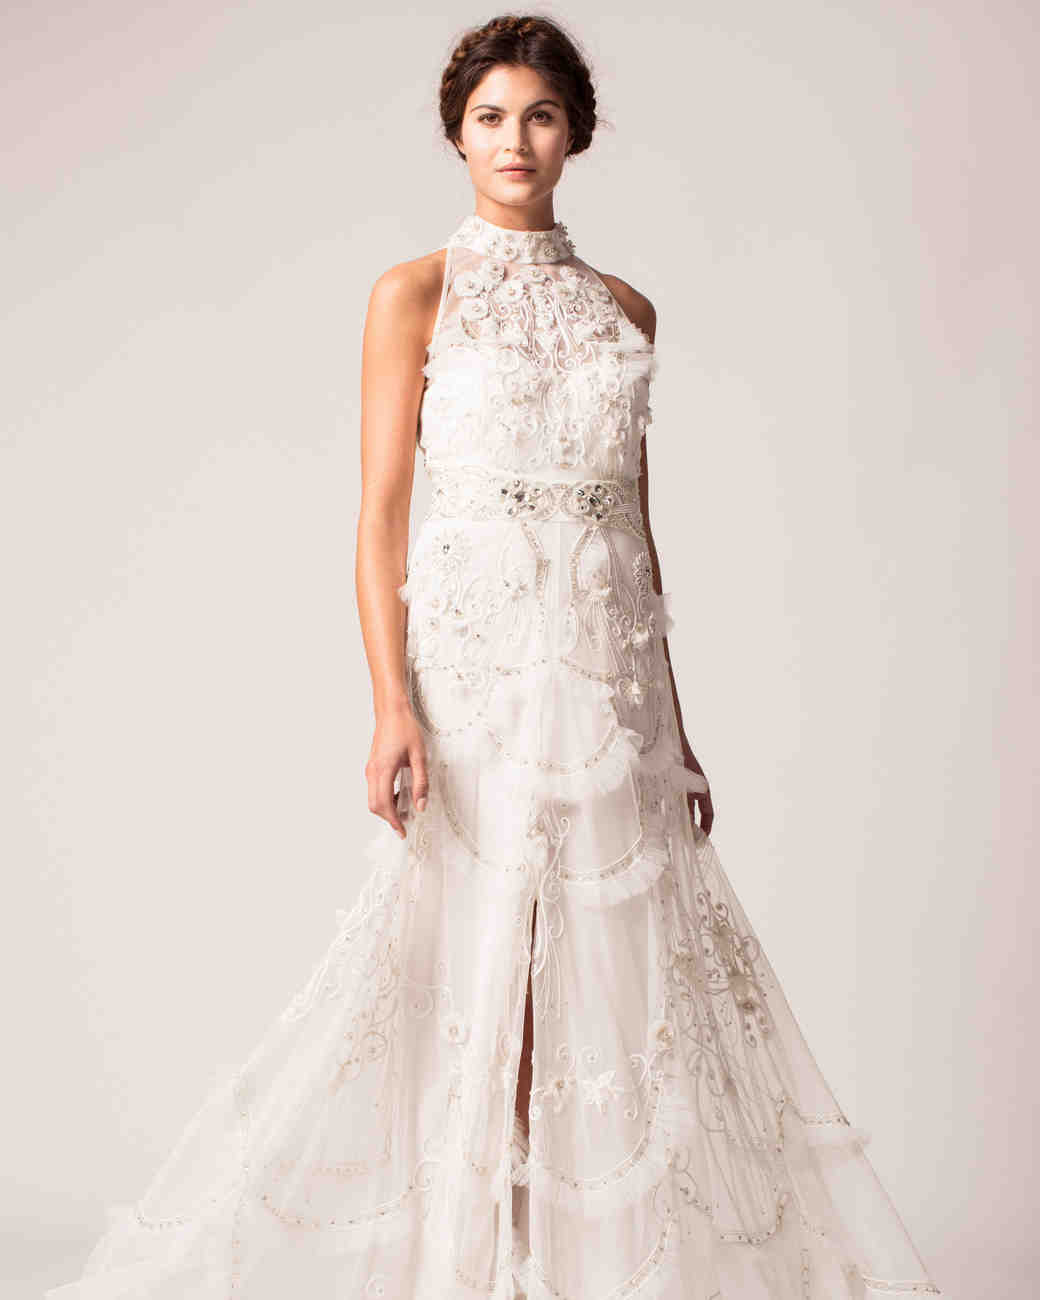 temperley-alt-fall2015-9e2a1556-004.jpg